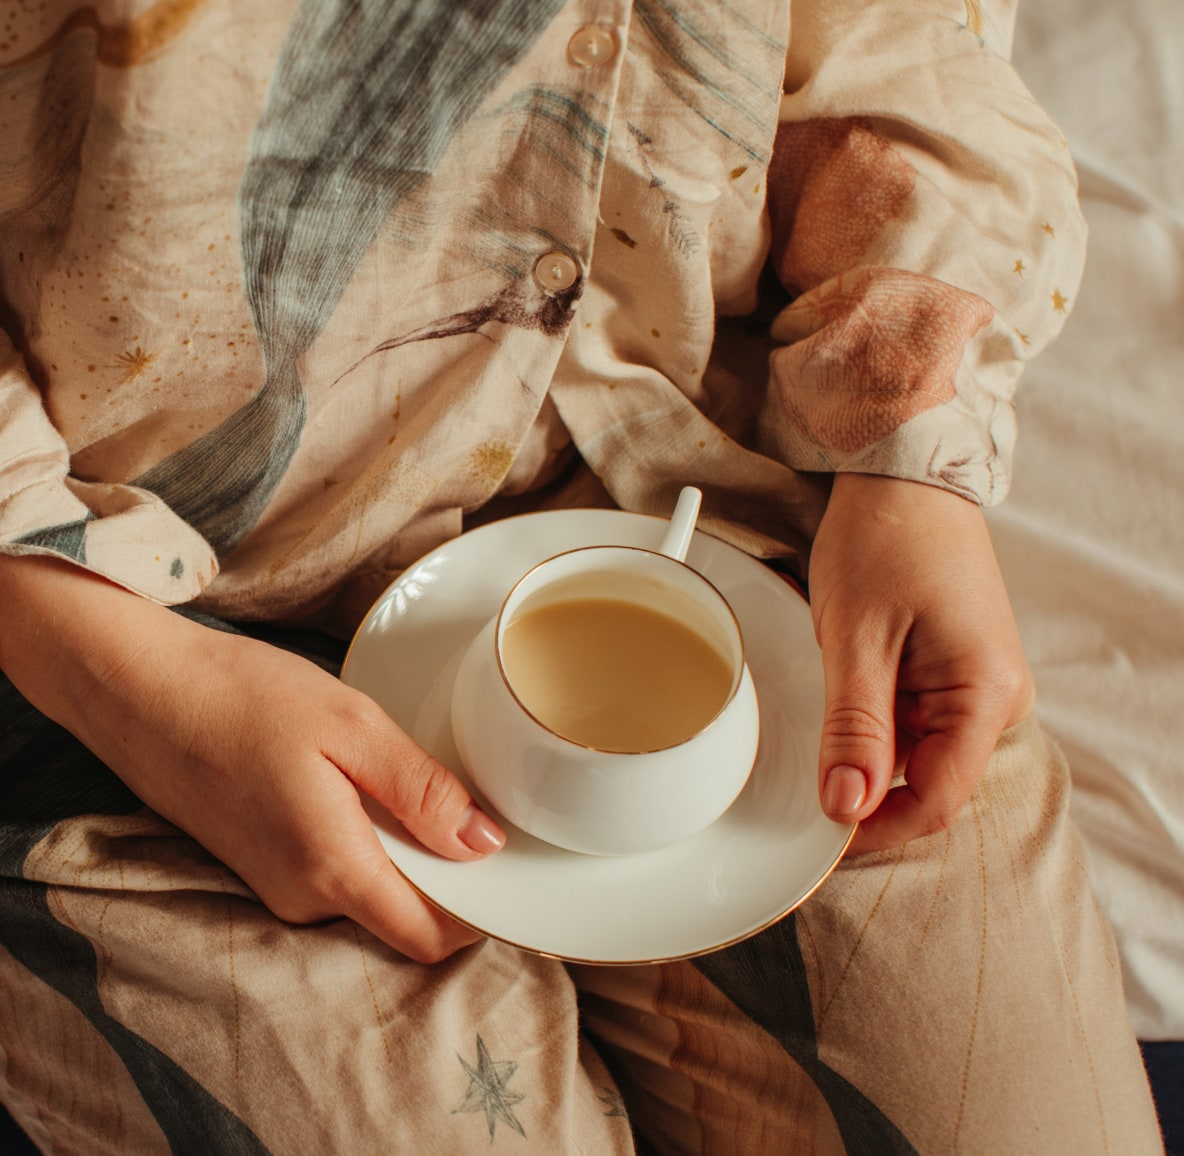 Woman in loose pajamas sitting on the edge of a bed with a cup of tea